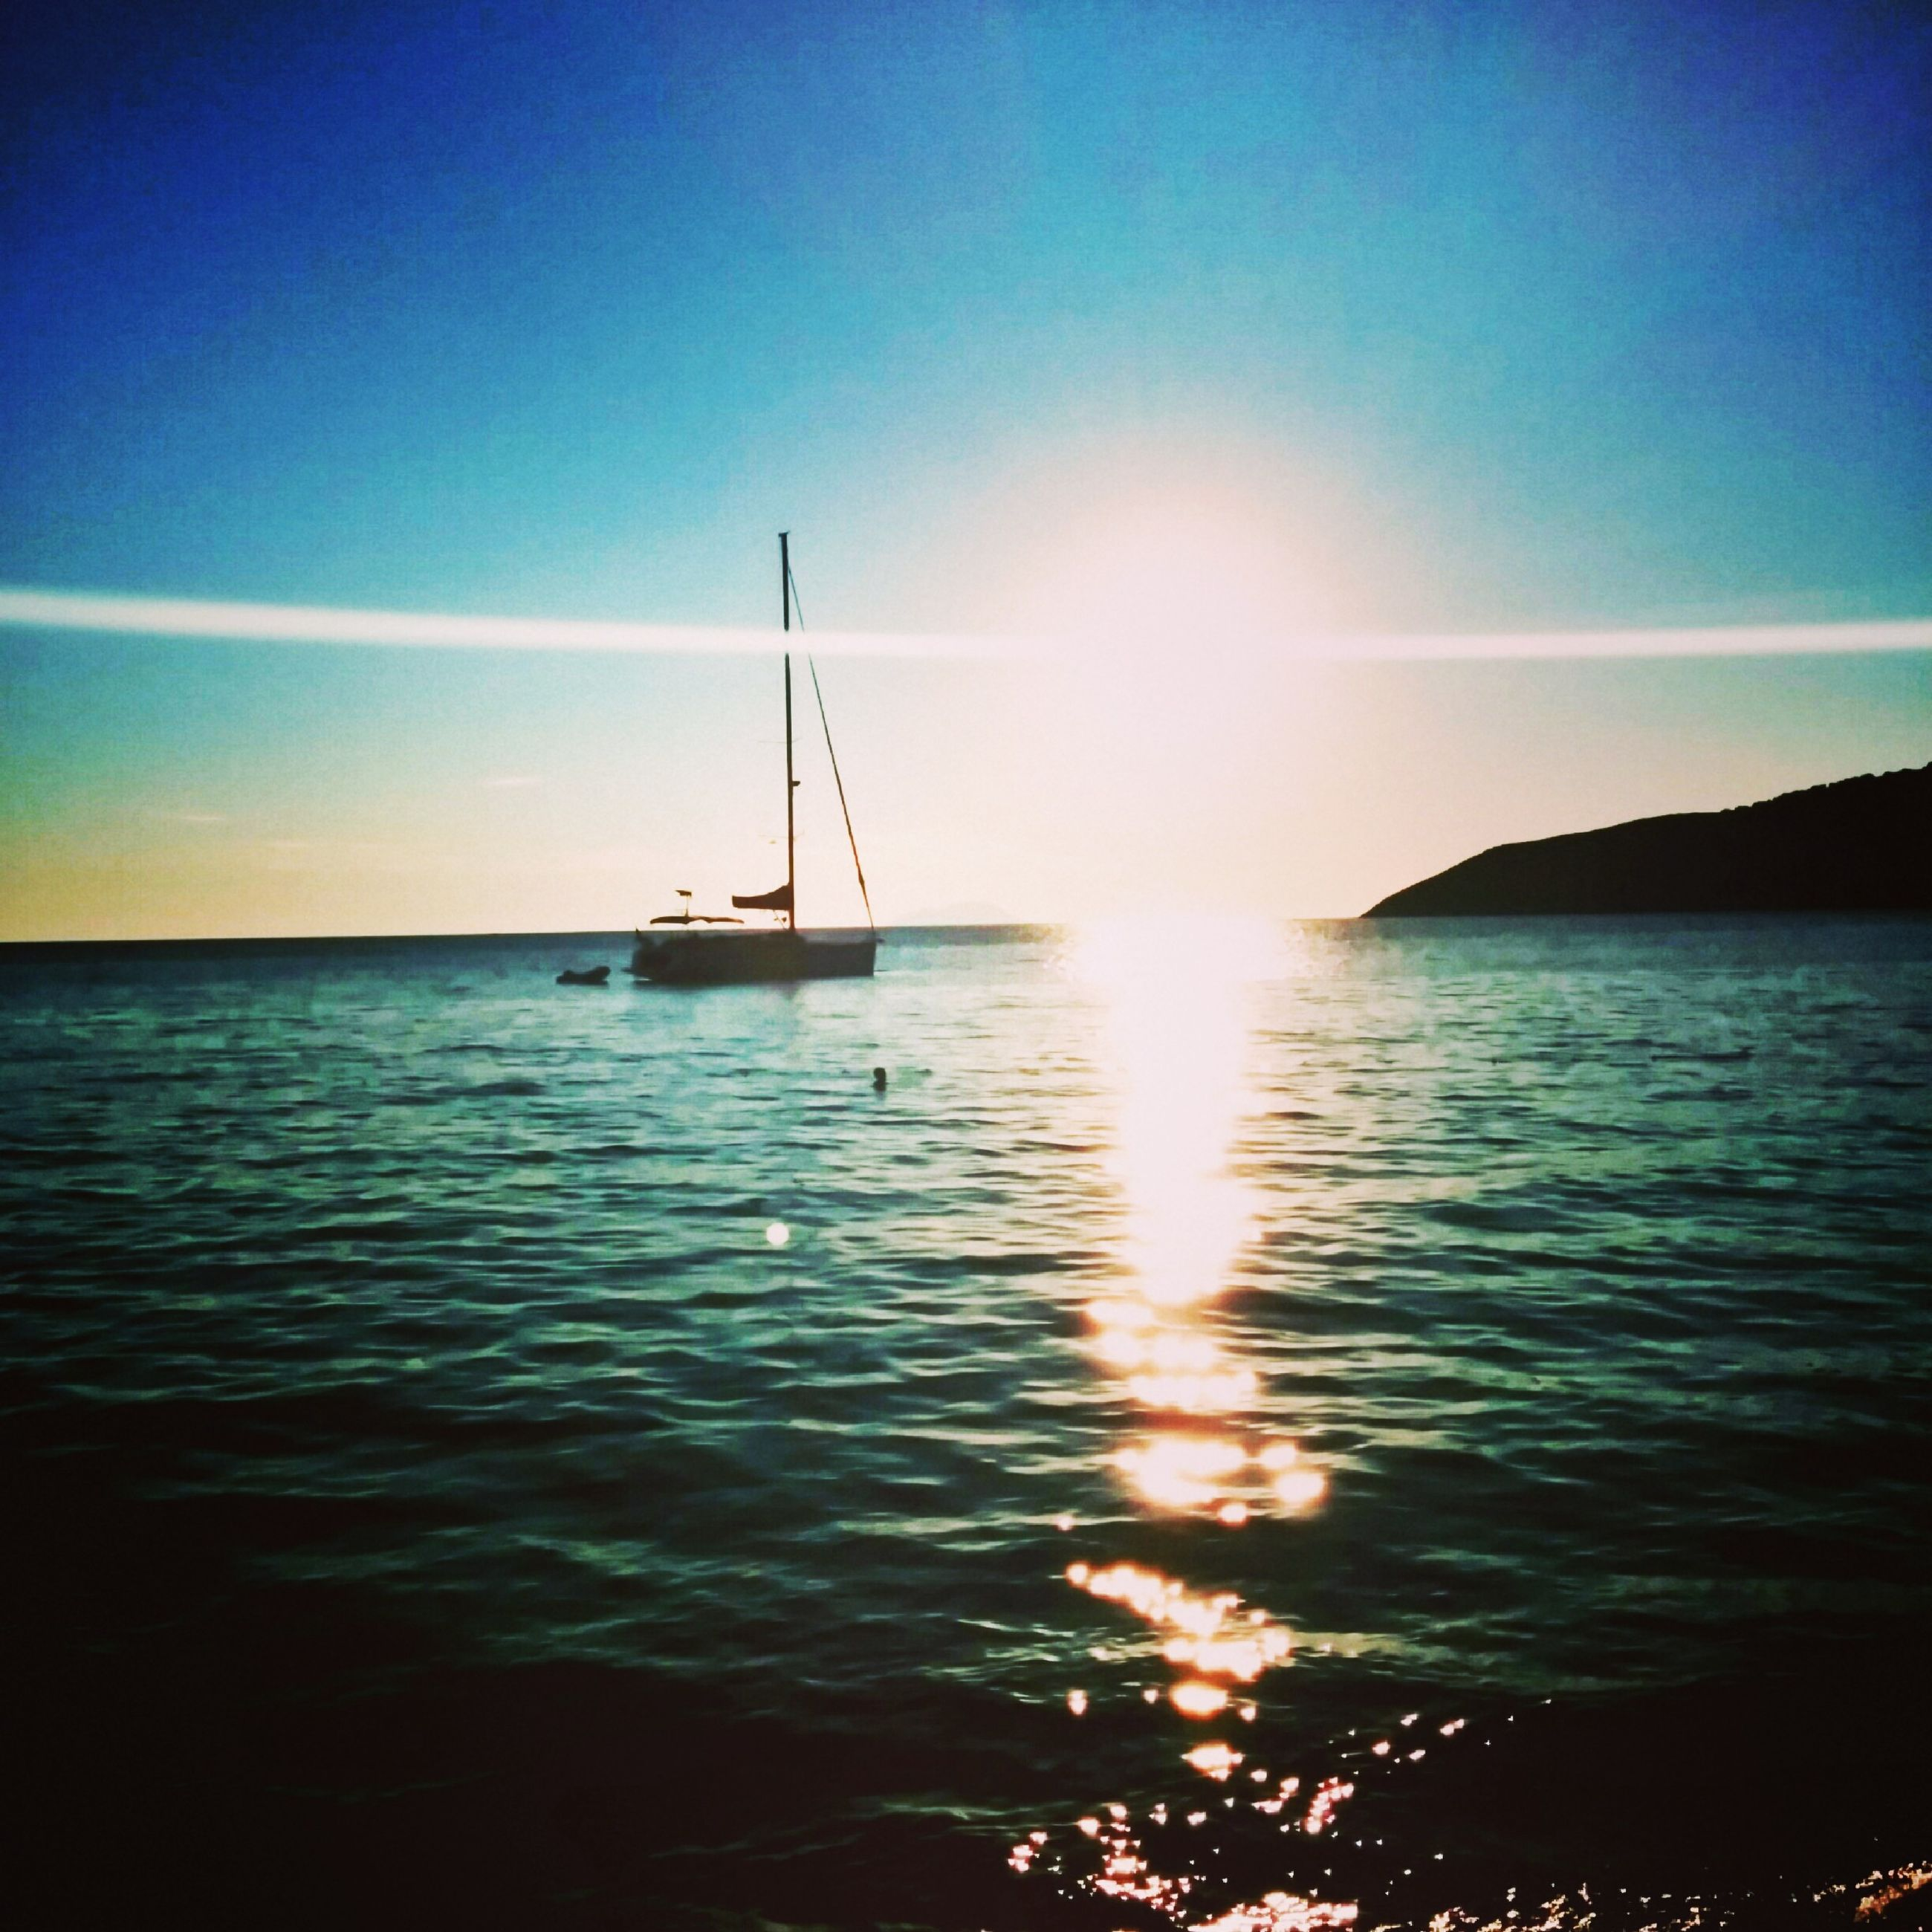 water, nautical vessel, sea, transportation, mode of transport, boat, horizon over water, sun, tranquil scene, scenics, tranquility, sky, beauty in nature, sailboat, nature, sunset, sunlight, waterfront, sailing, travel